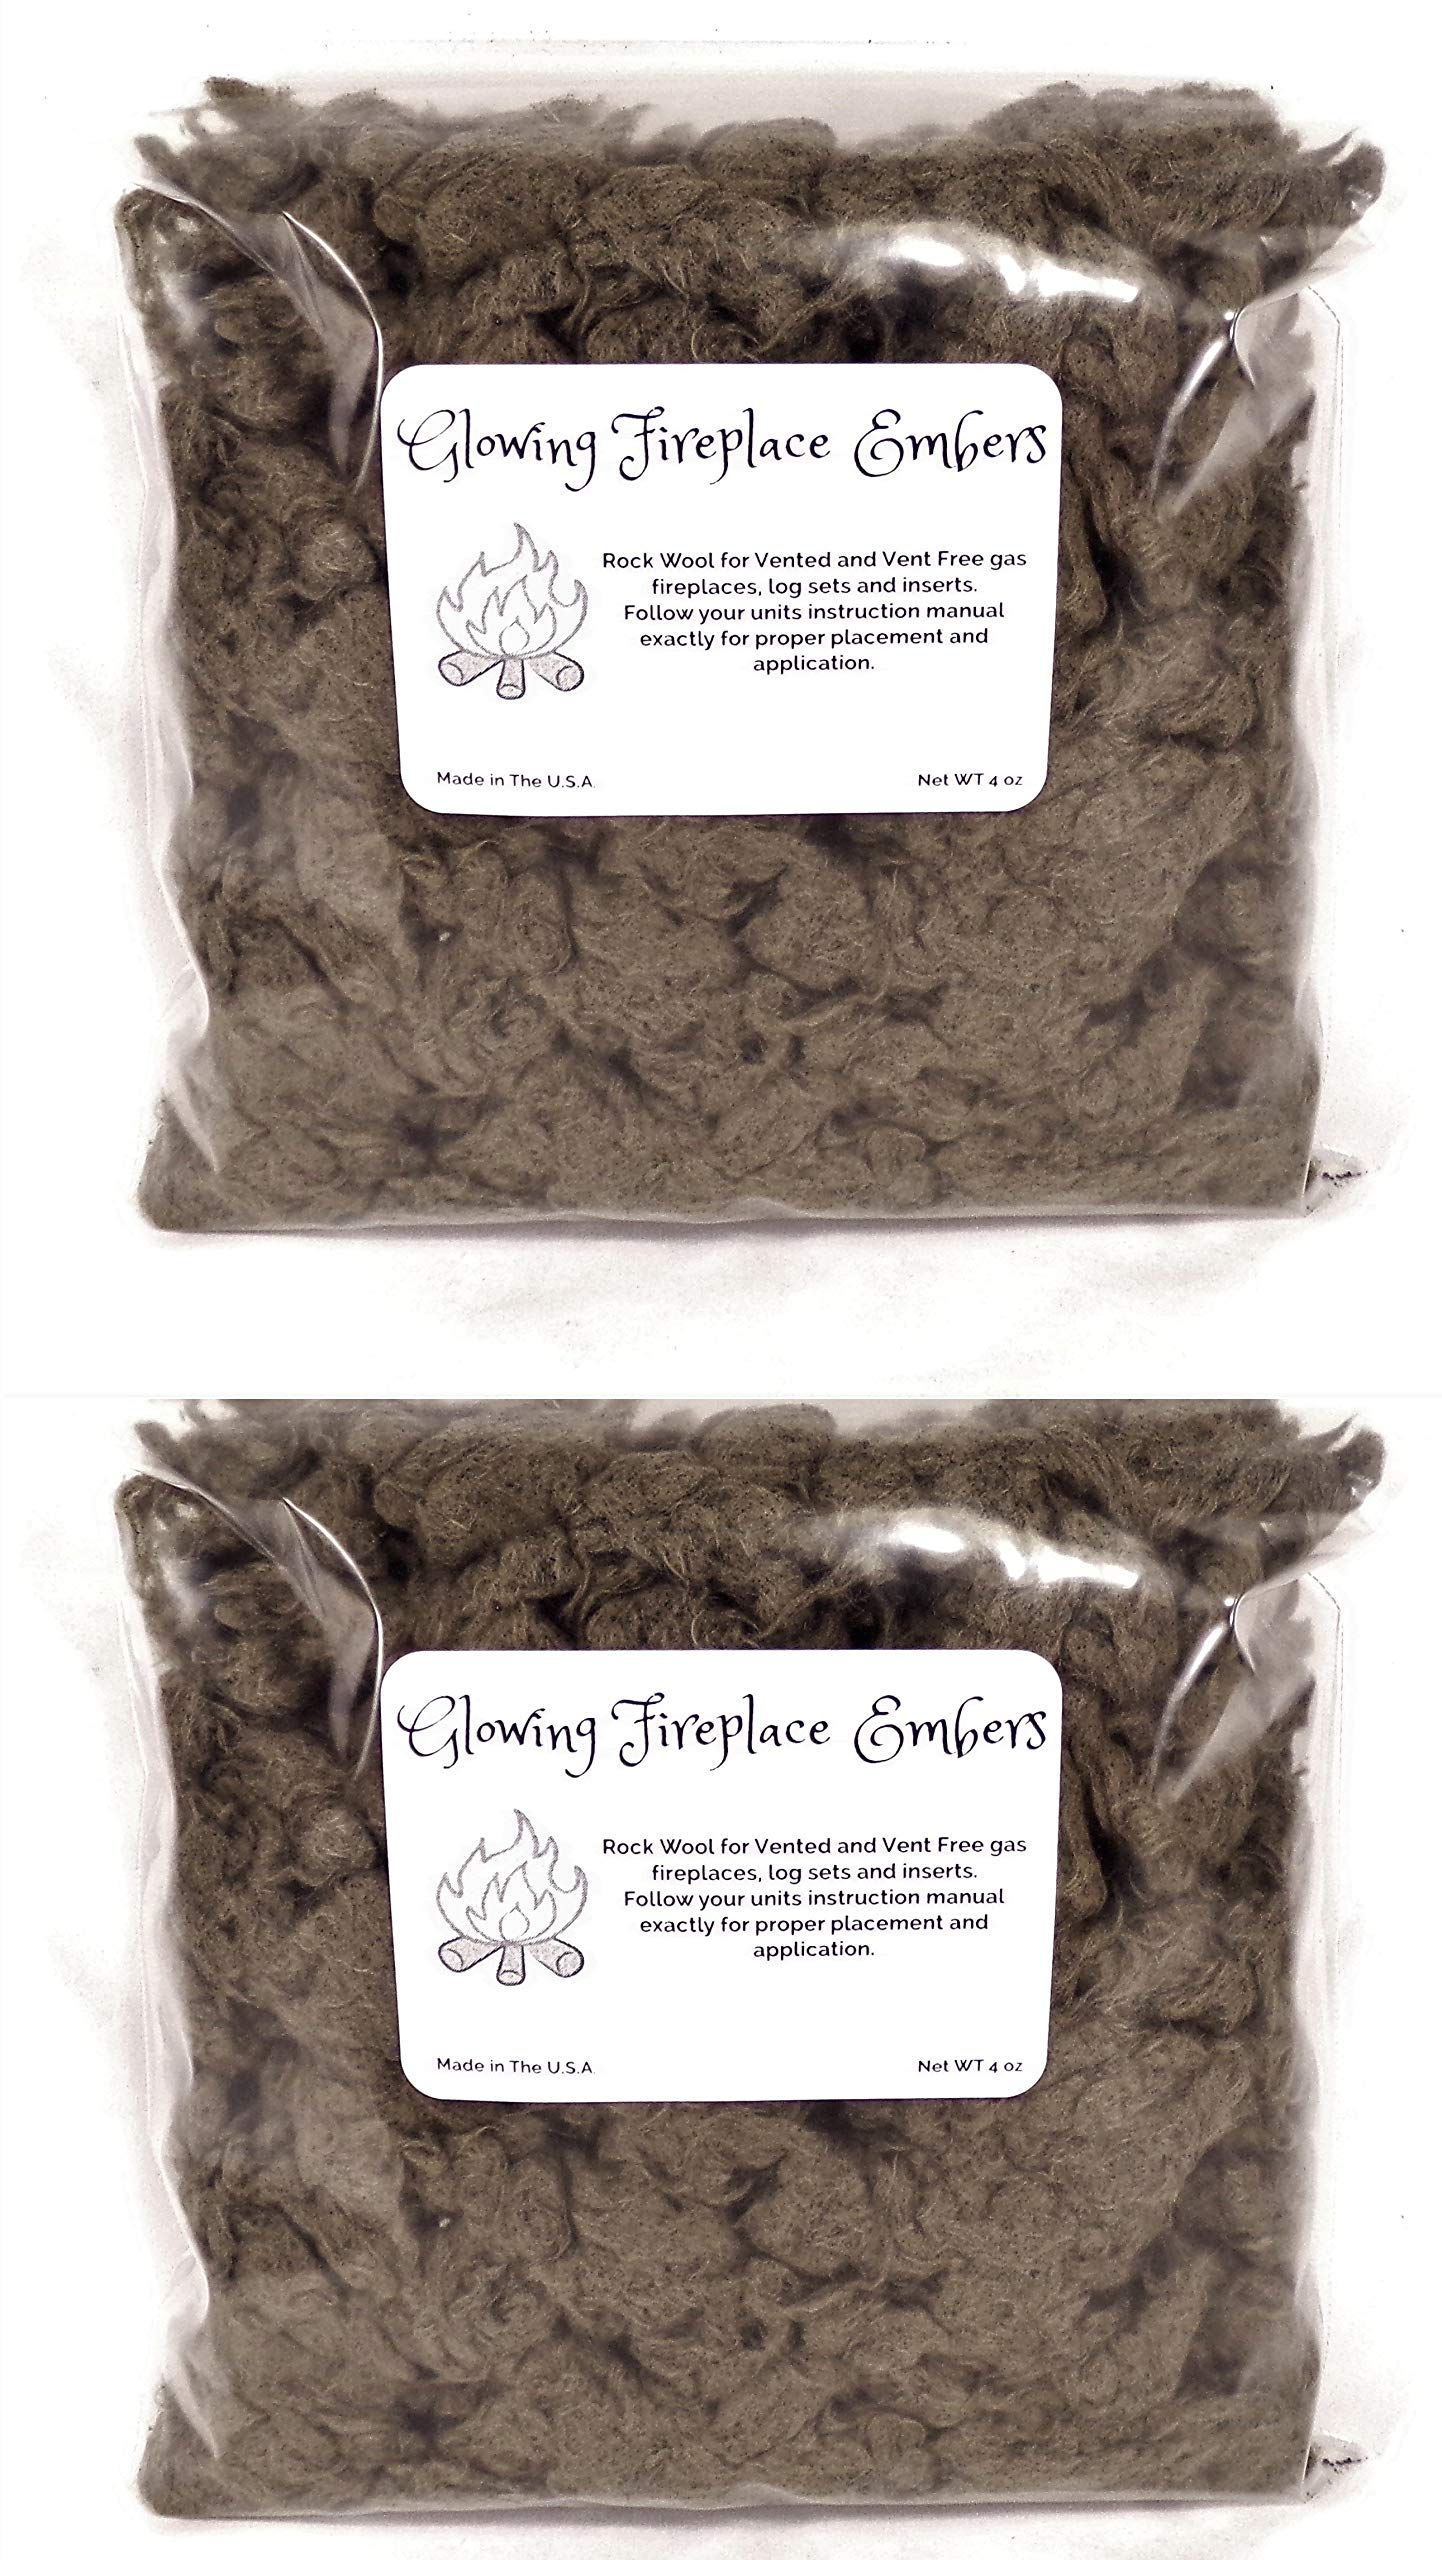 Gas Fireplace Glowing Embers, Rock Wool for Vent Free or Vented Gas Log Sets, Inserts and Fireplaces. 2- Large 4 Oz. Bags, 8 Ounces Total by FP Accessories